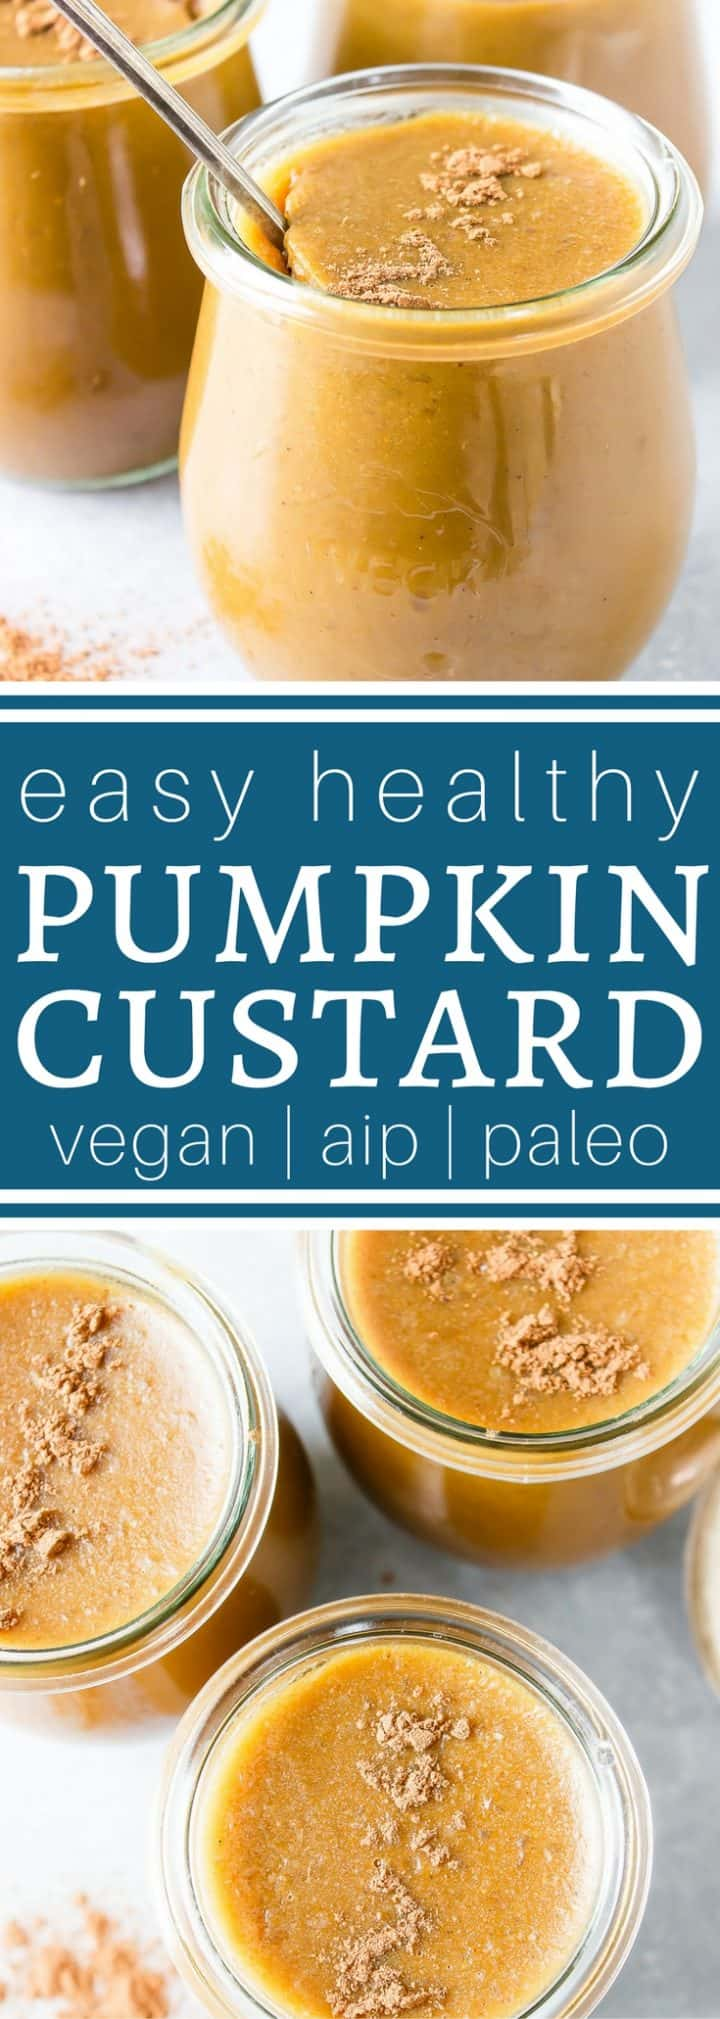 Healthy Pumpkin Custard - paleo, vegan, dairy-free, egg-free, AIP, low-carb & THM:S